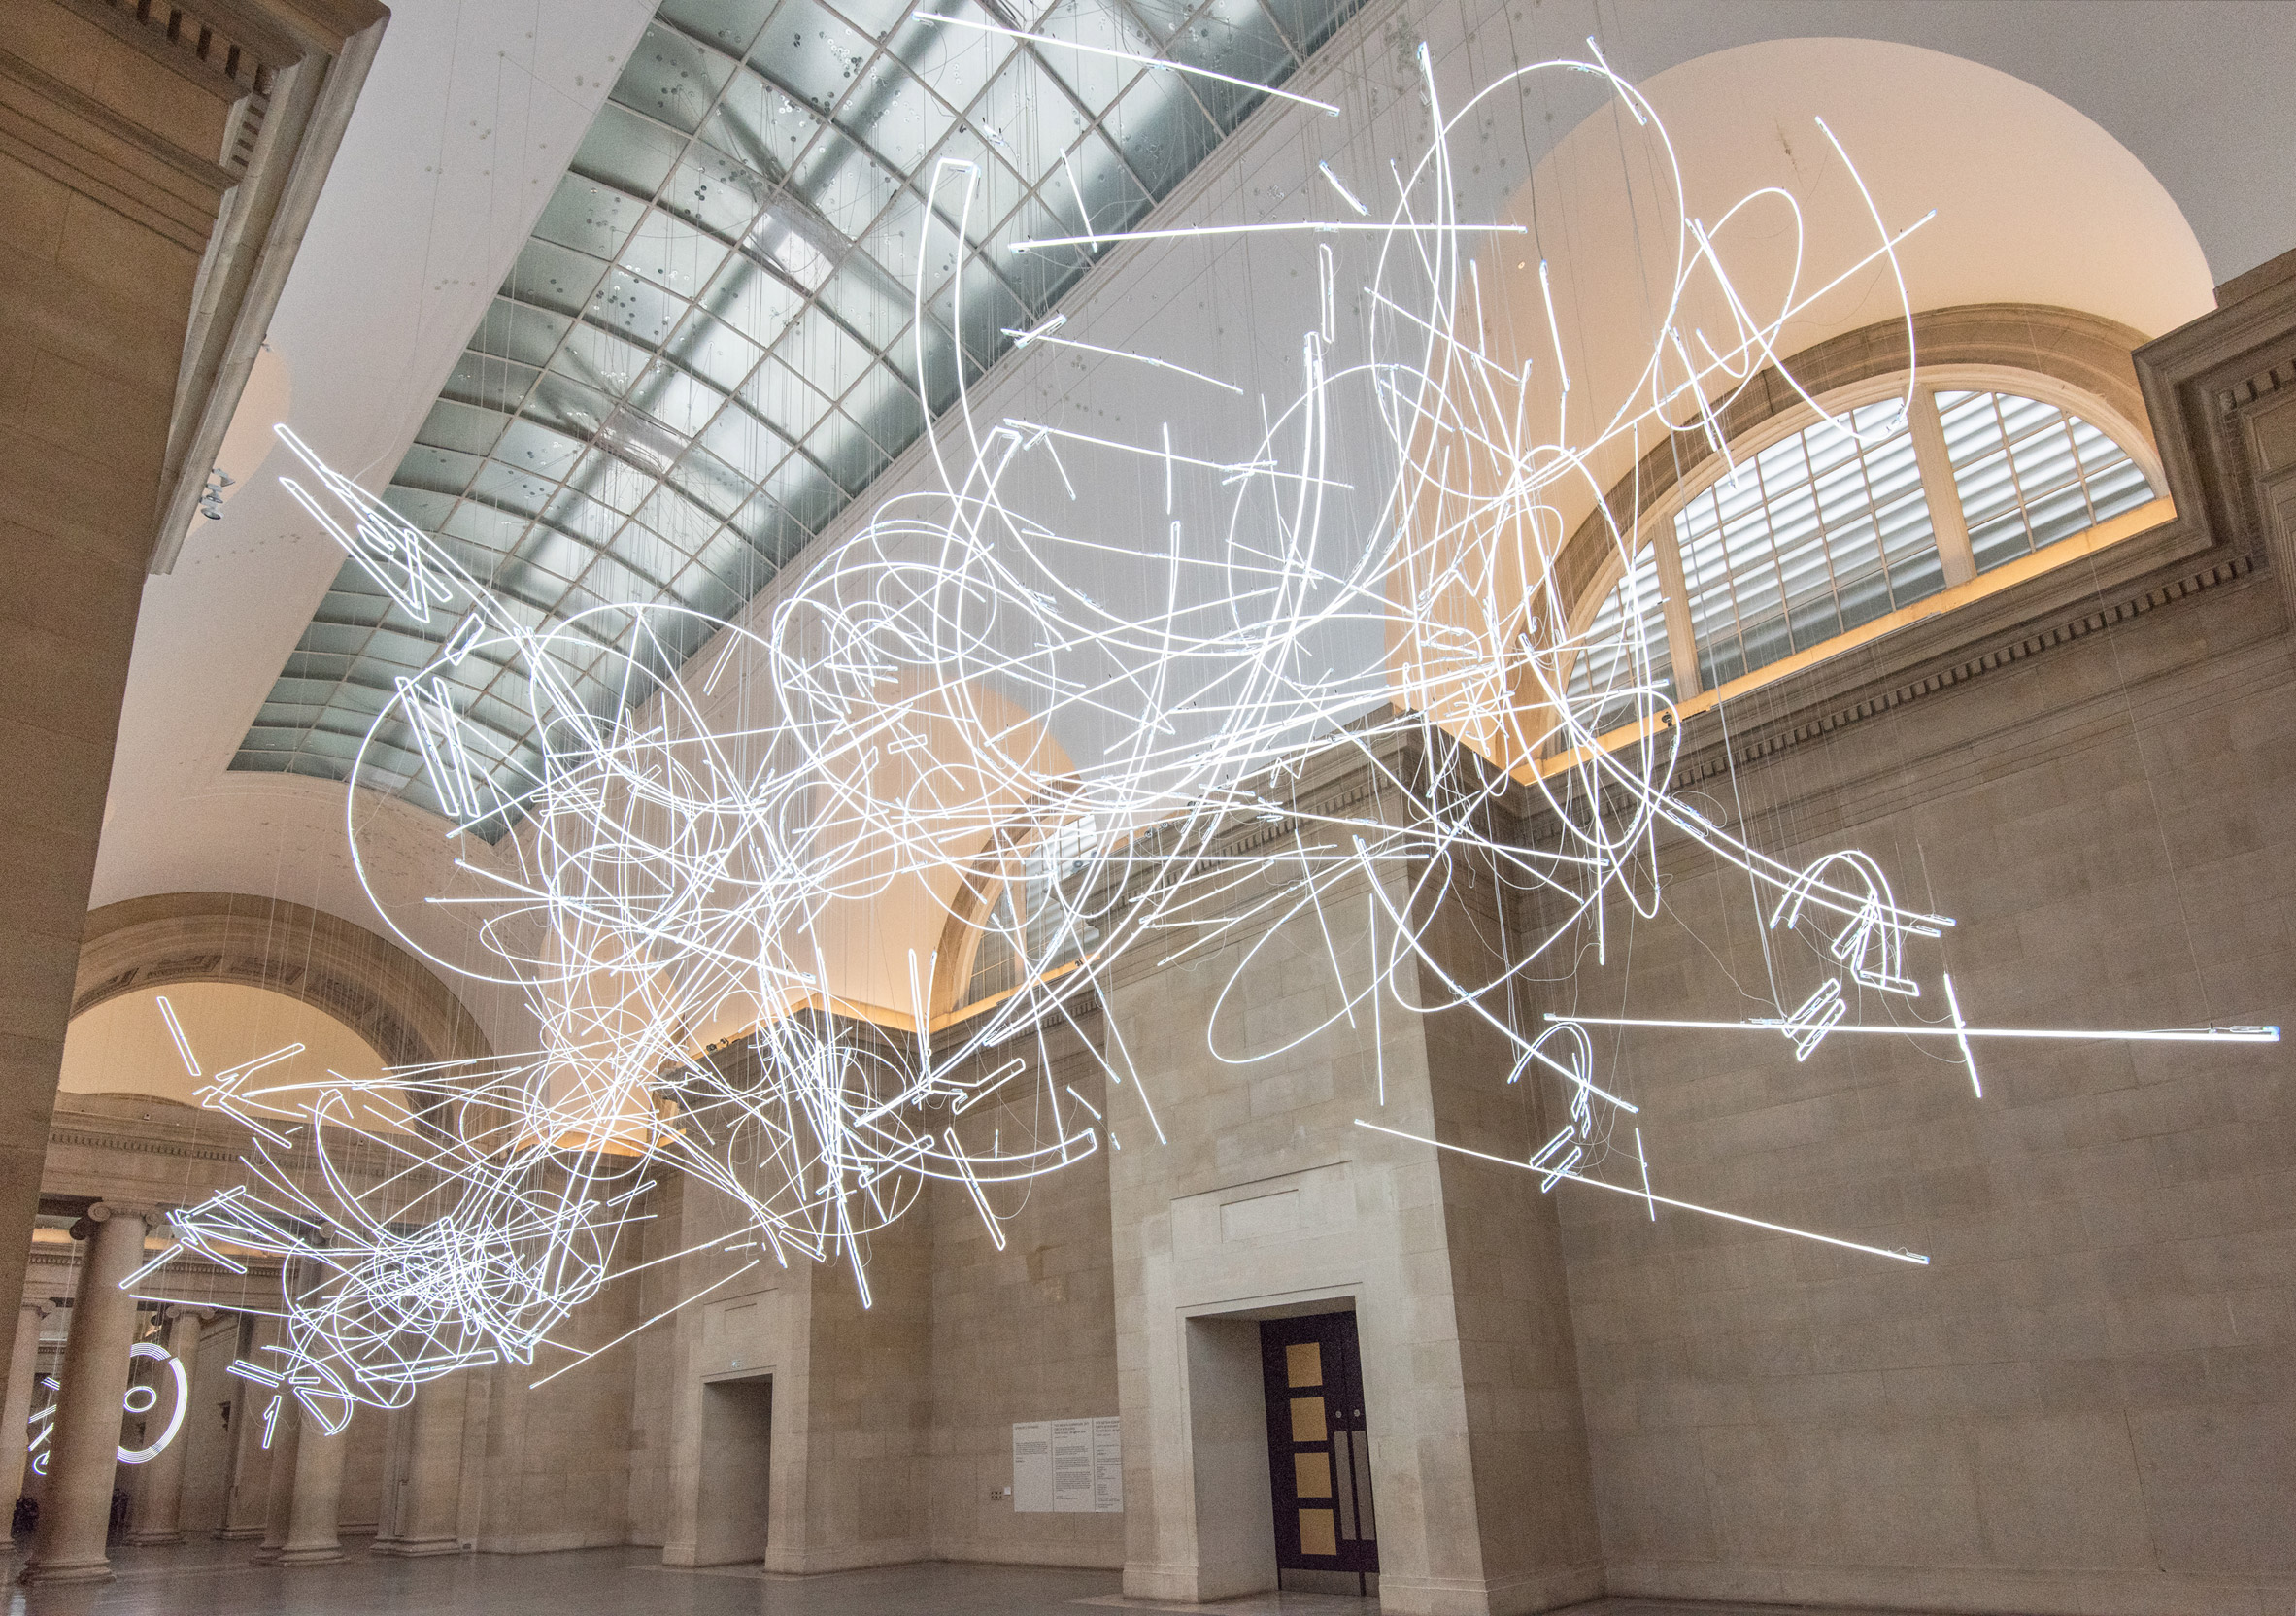 Neon scribbles by Cerith Wyn Evans hang in London's Tate Britain